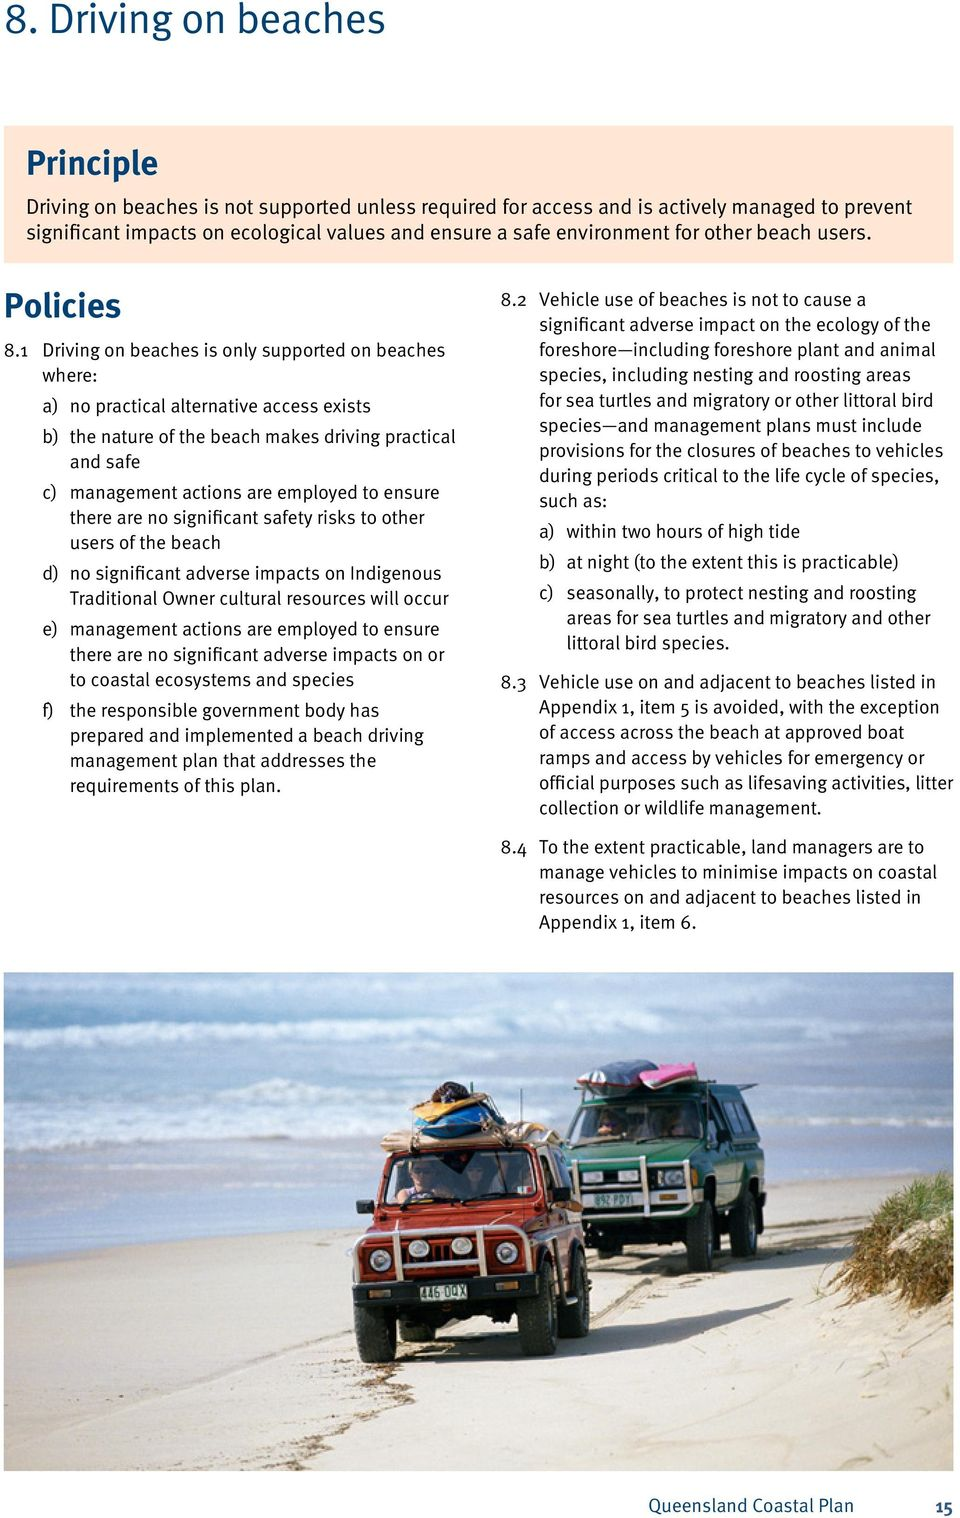 1 Driving on beaches is only supported on beaches where: a) no practical alternative access exists b) the nature of the beach makes driving practical and safe c) management actions are employed to